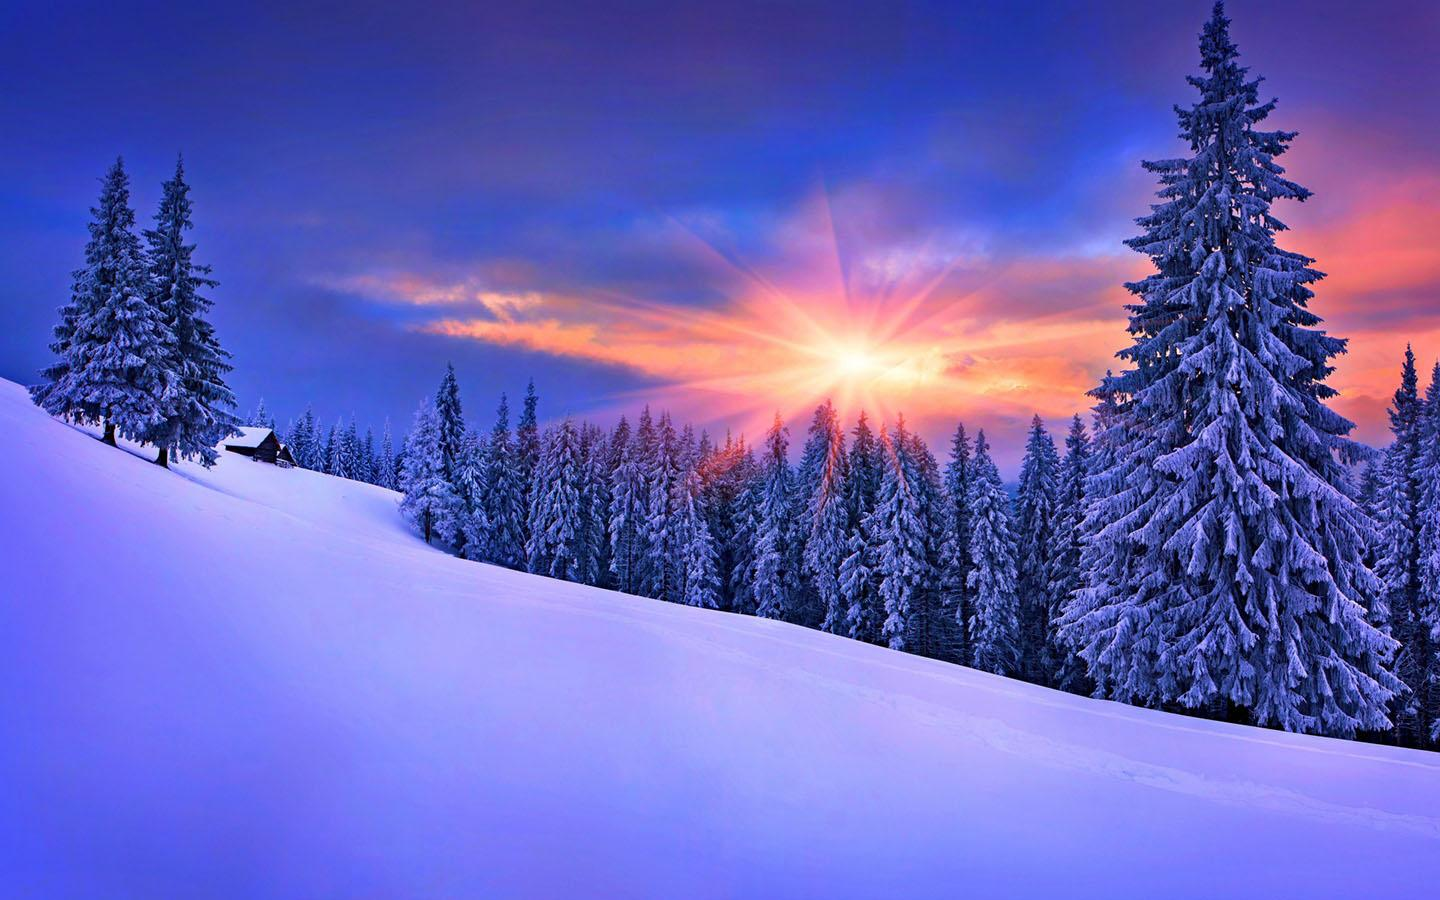 Snow wallpaper apk download android Beautiful snowfall pictures